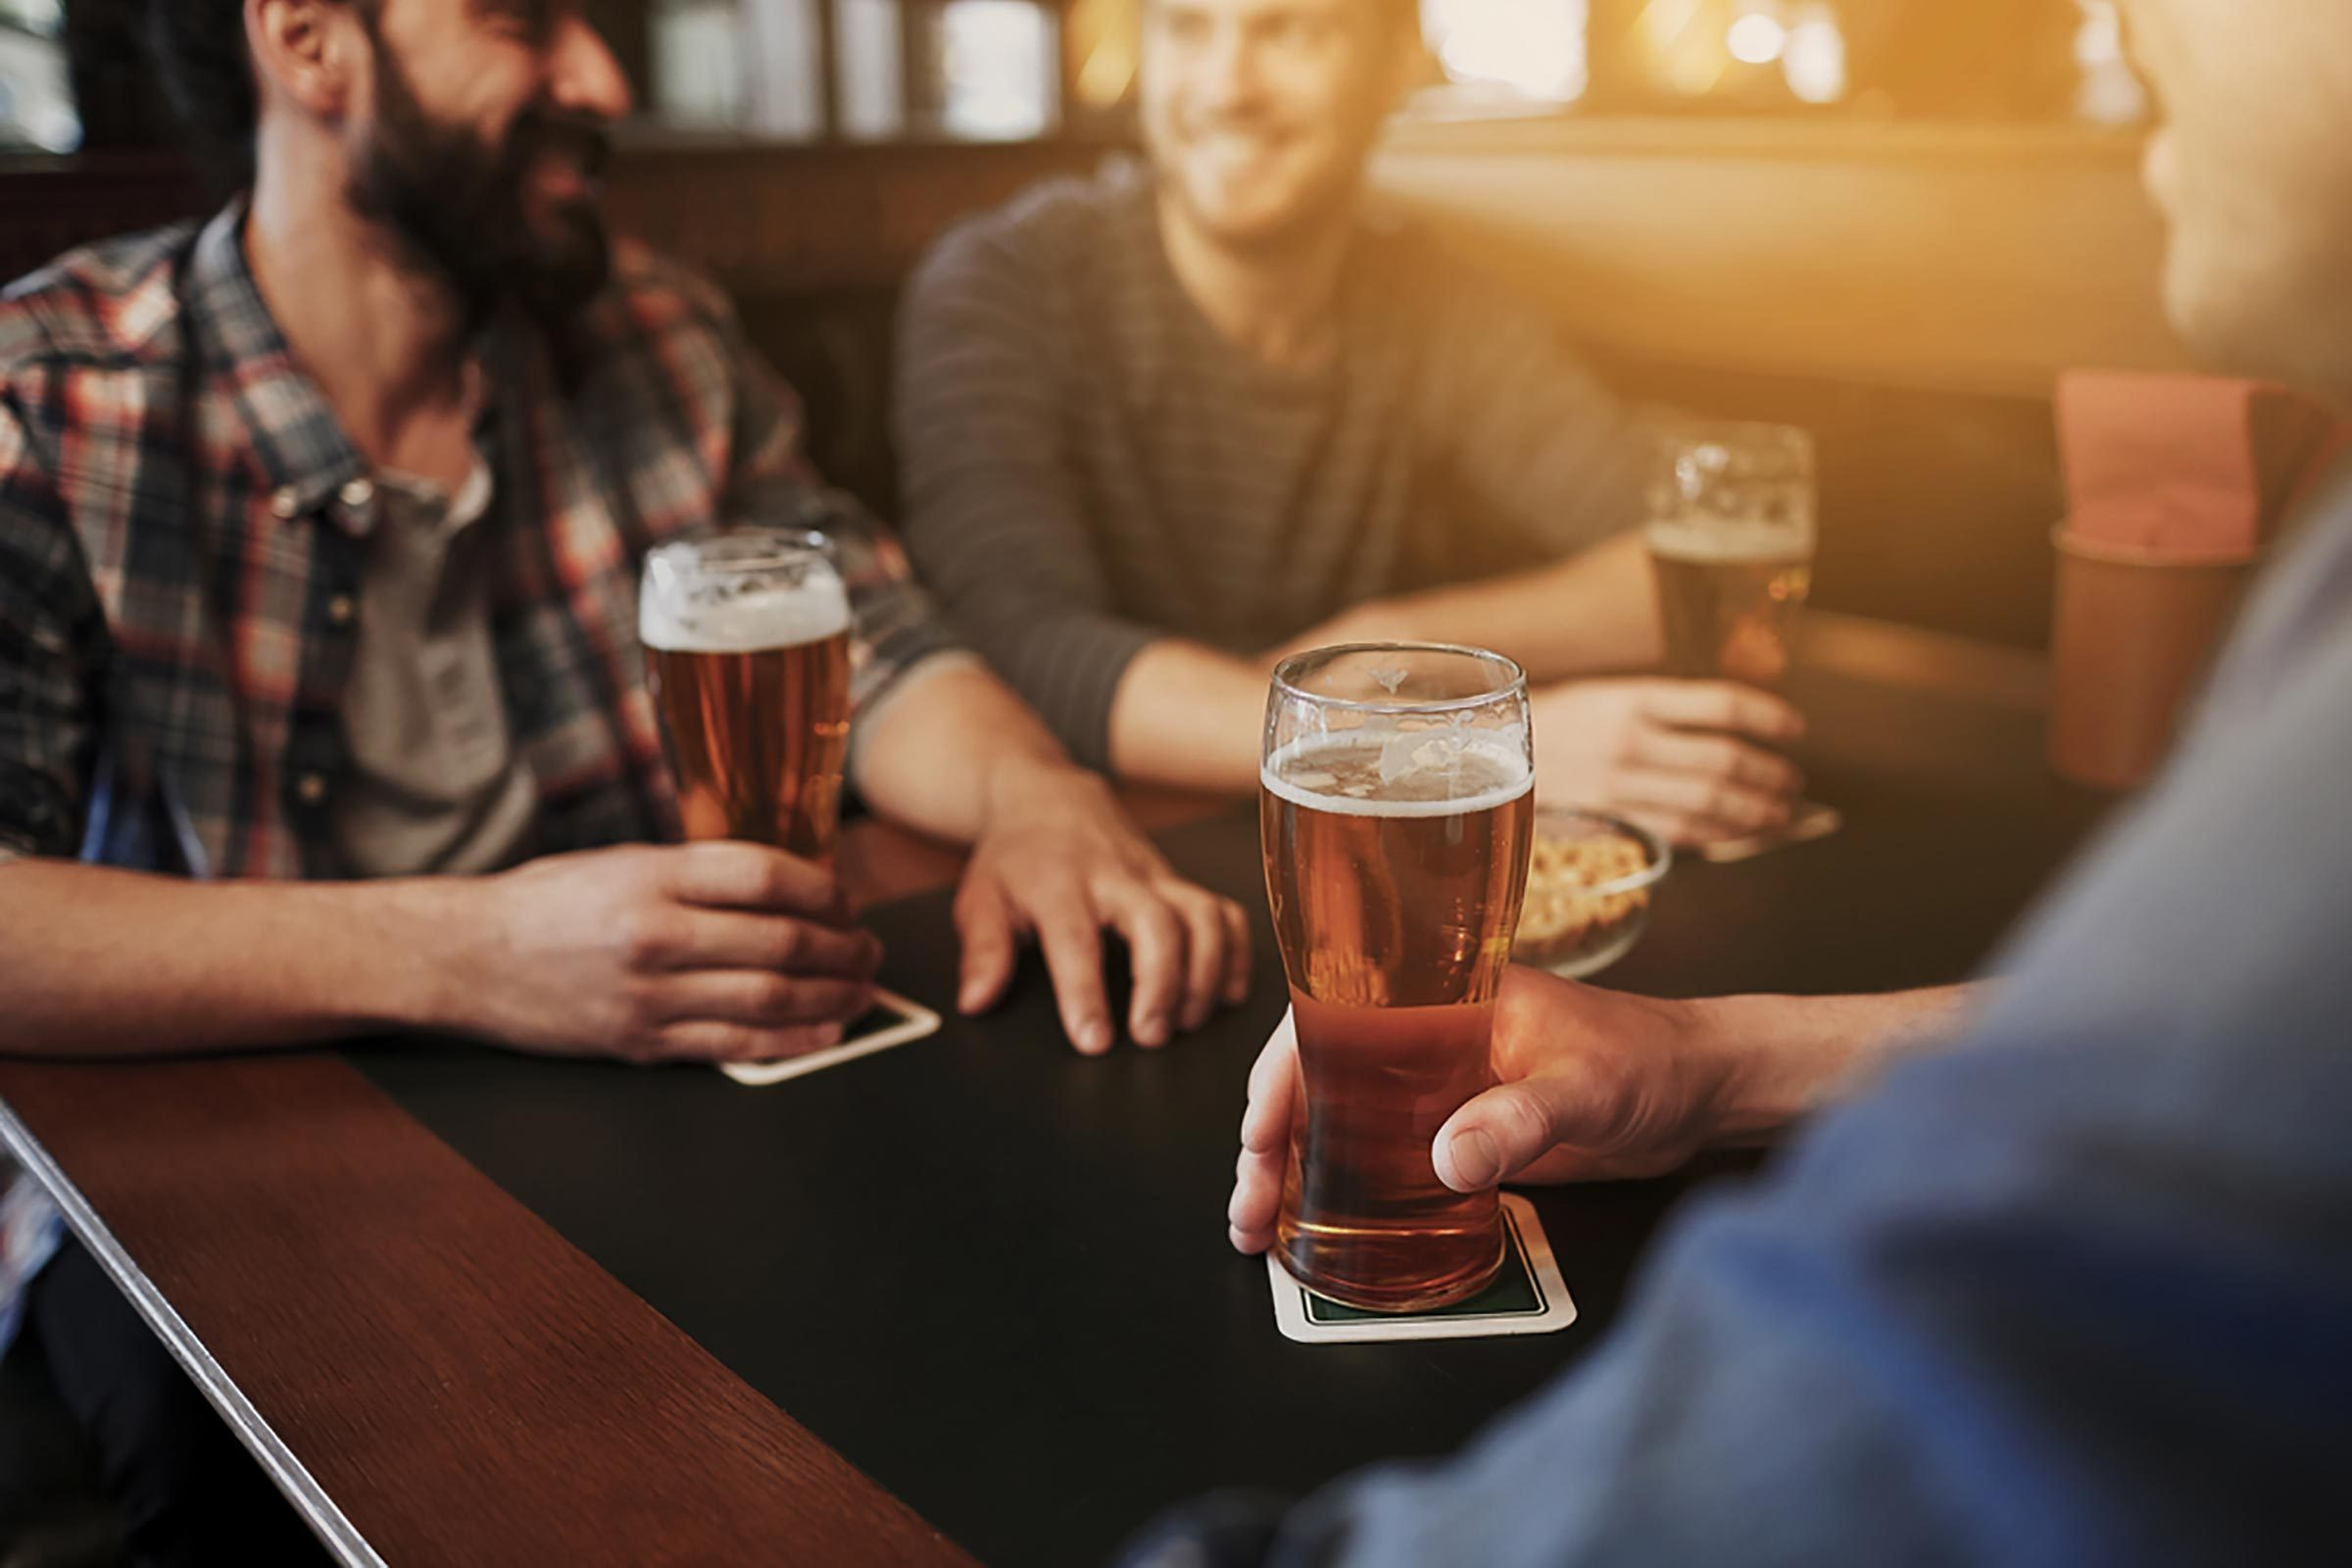 Harm of beer for men and women. Harm of non-alcoholic beer 7